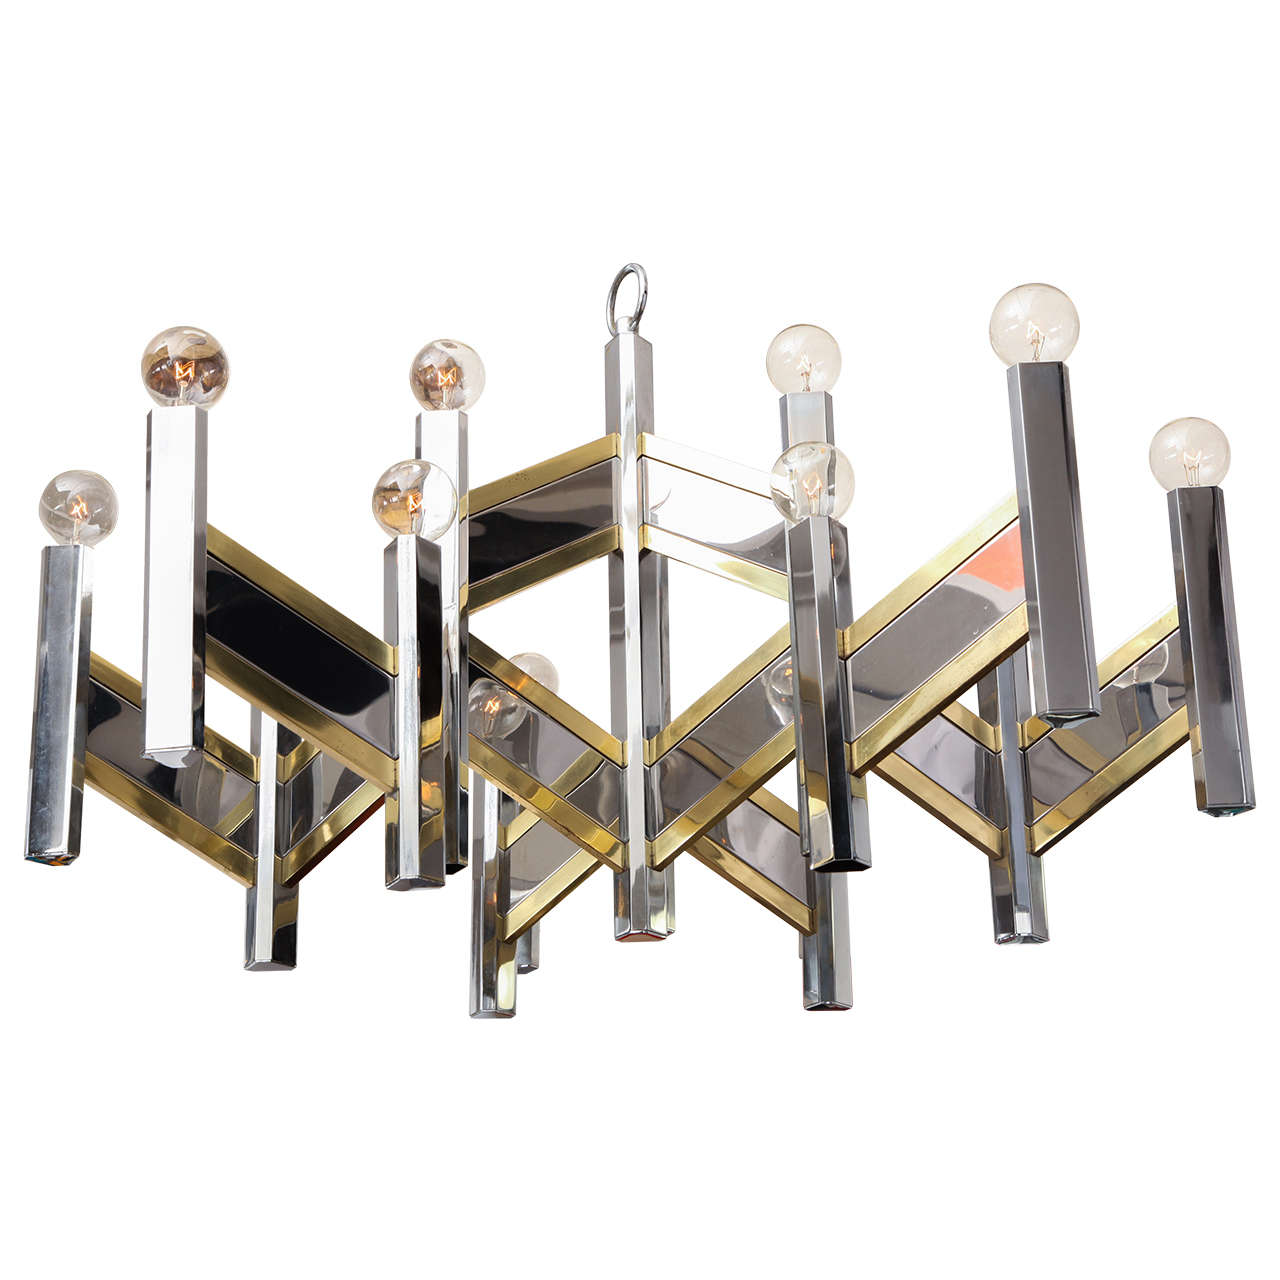 Italian 1960s Architectural Ceiling Fixture by Gaetano Sciolari For Sale